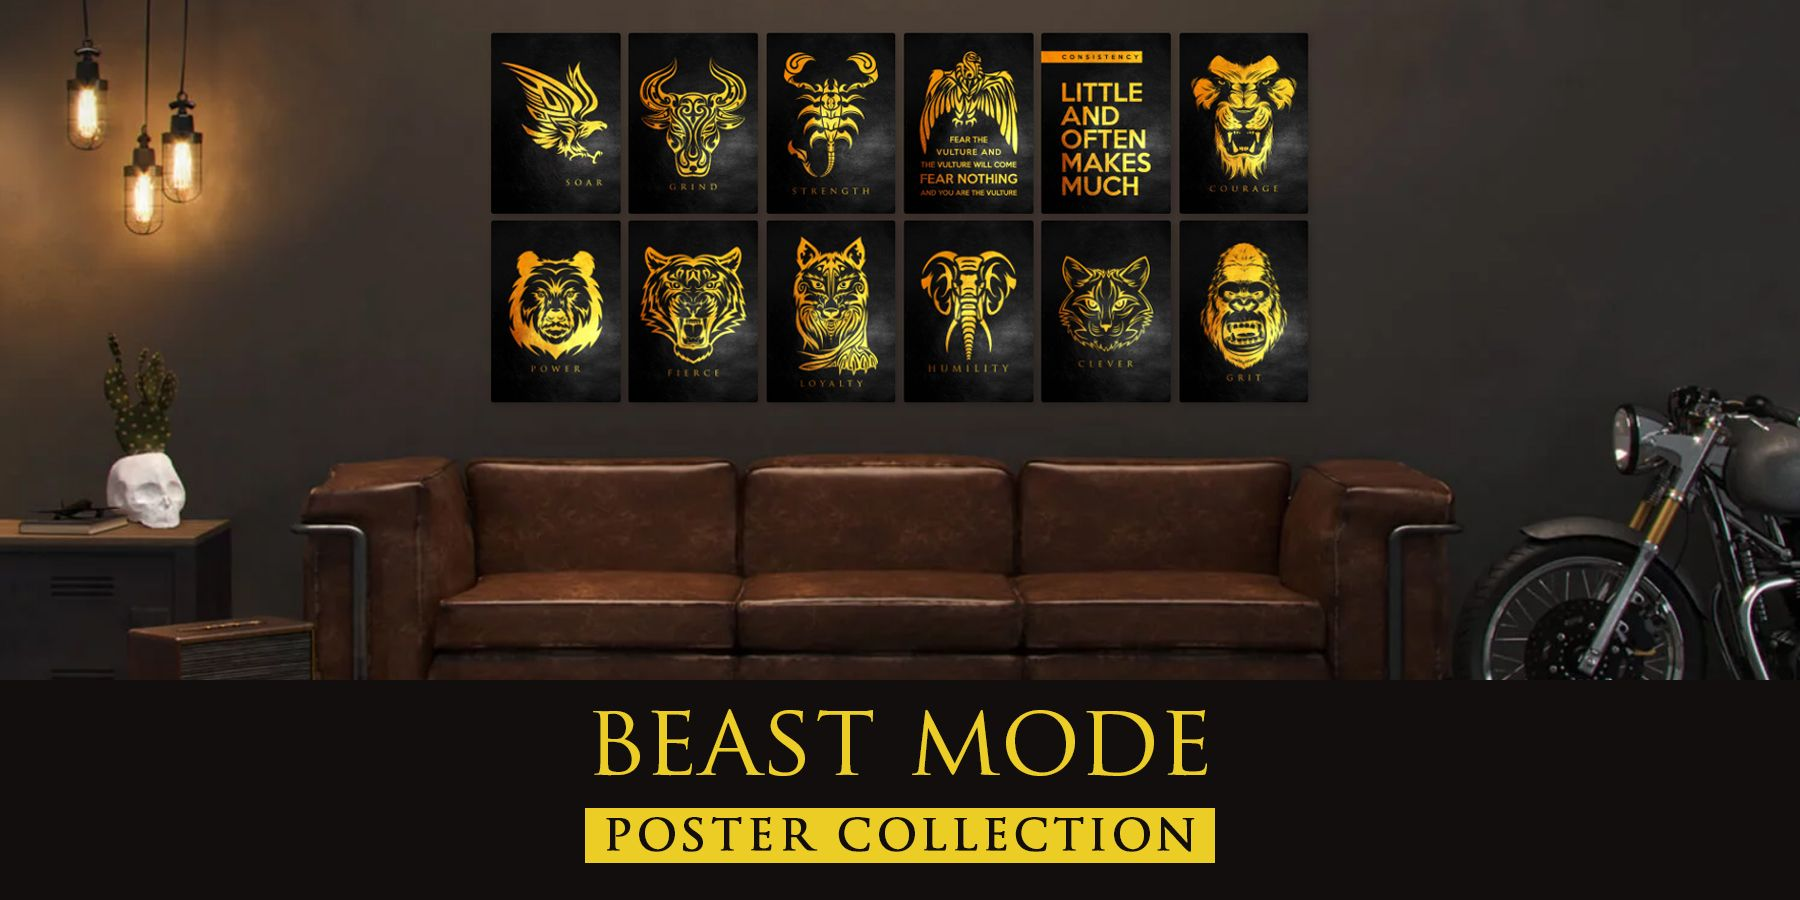 Beast Mode Mentality Posters Home Decor Interior Design  Mentality  Reality Be careful of your thoughts for your thoughts become your words Be careful of your words for y...